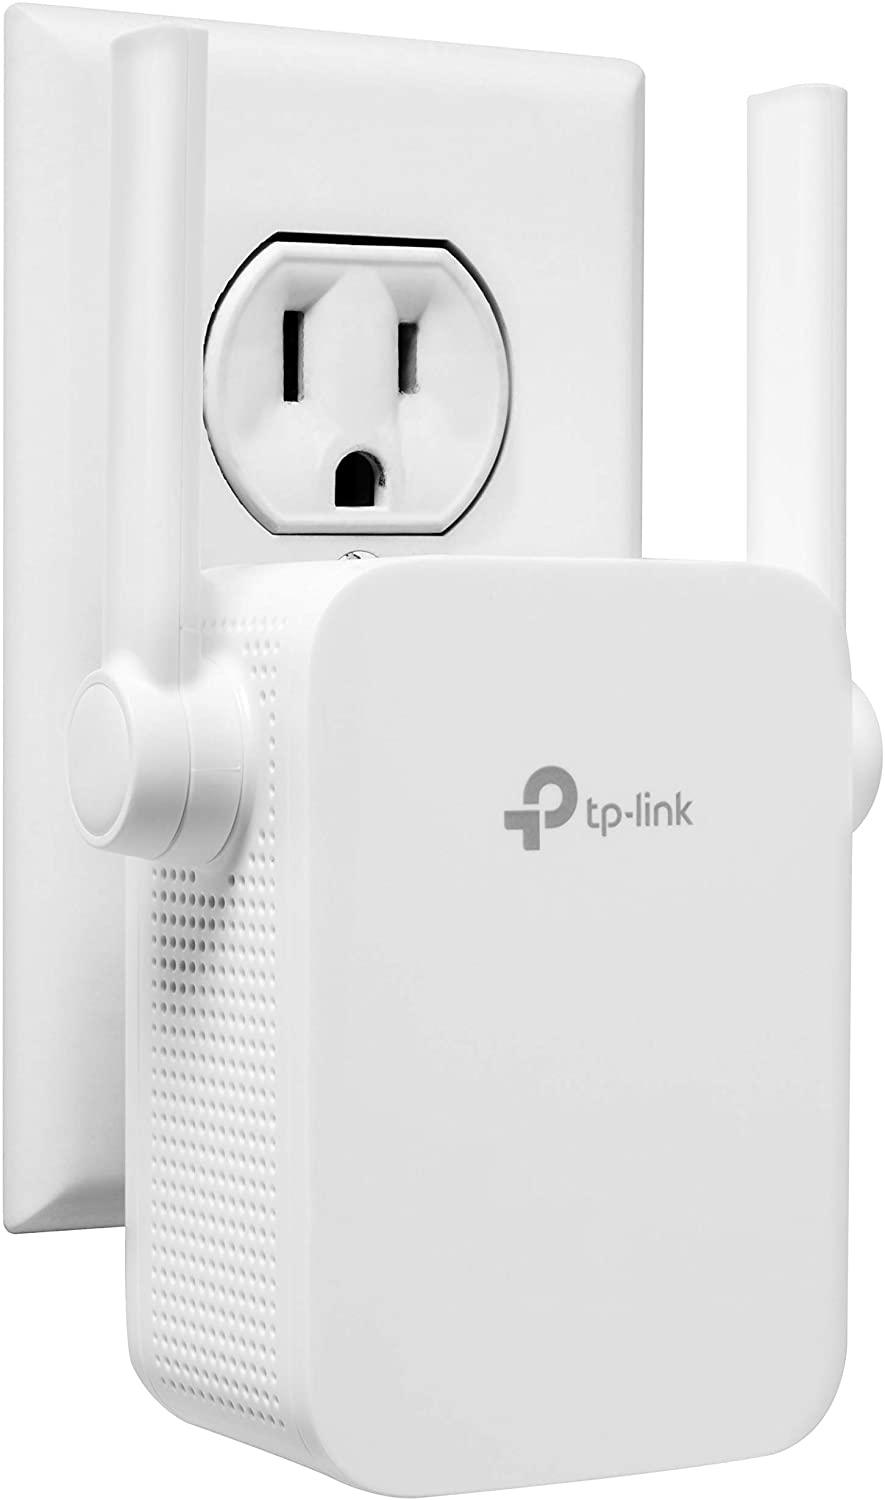 TP-Link WiFi Extender - Amazon.